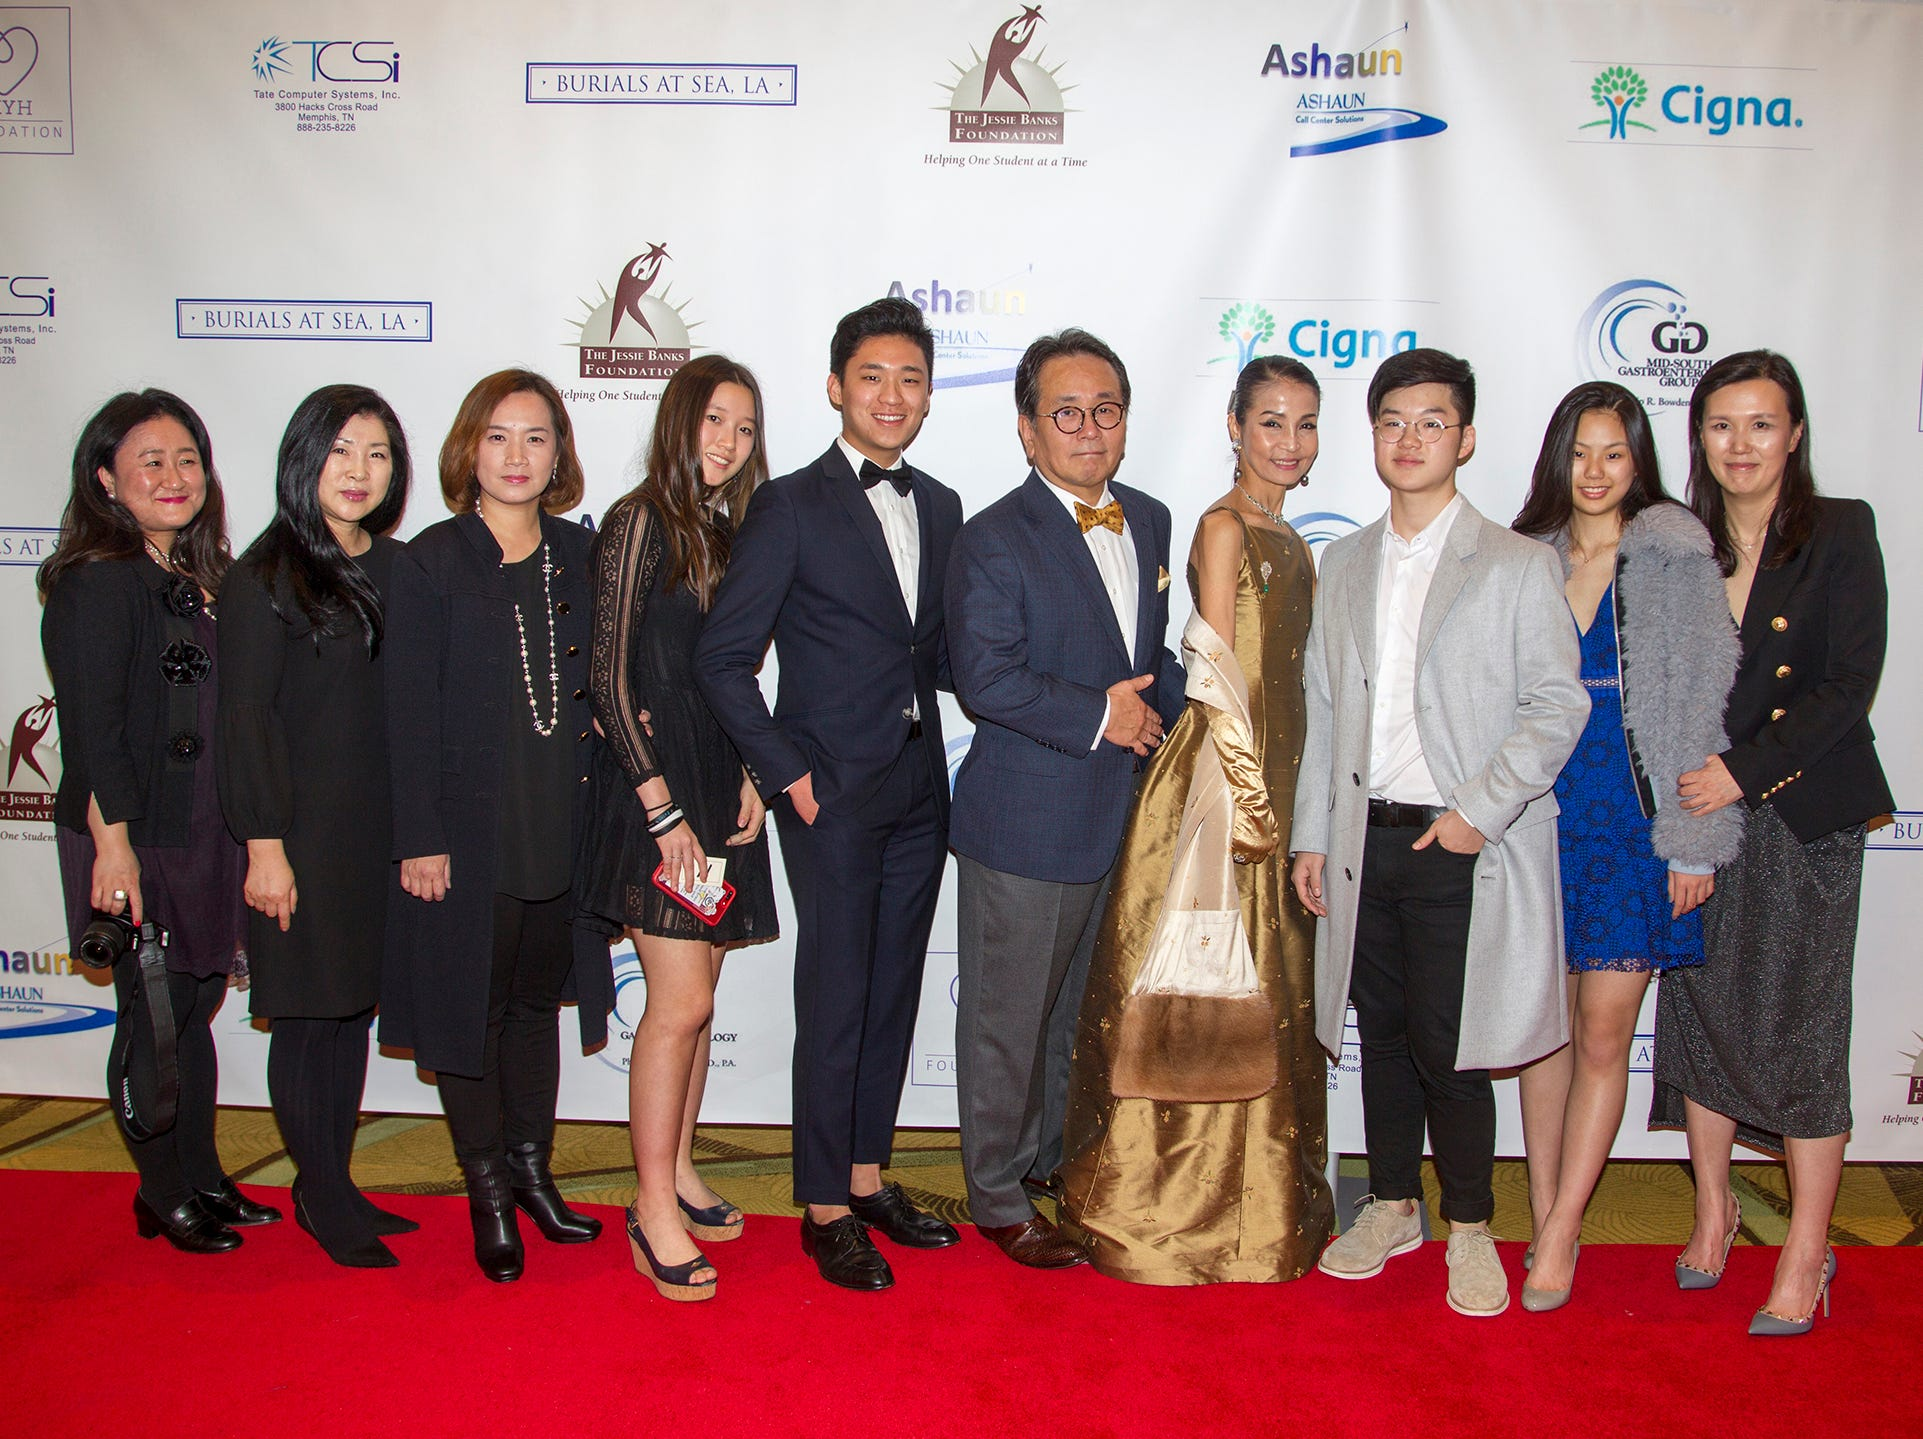 Center Dr. Mingi Choi and Heather Won Choi and Family. Jessie Banks Foundation holds 16th annual Scholarship Awards Gala in Teaneck. 11/09/2018